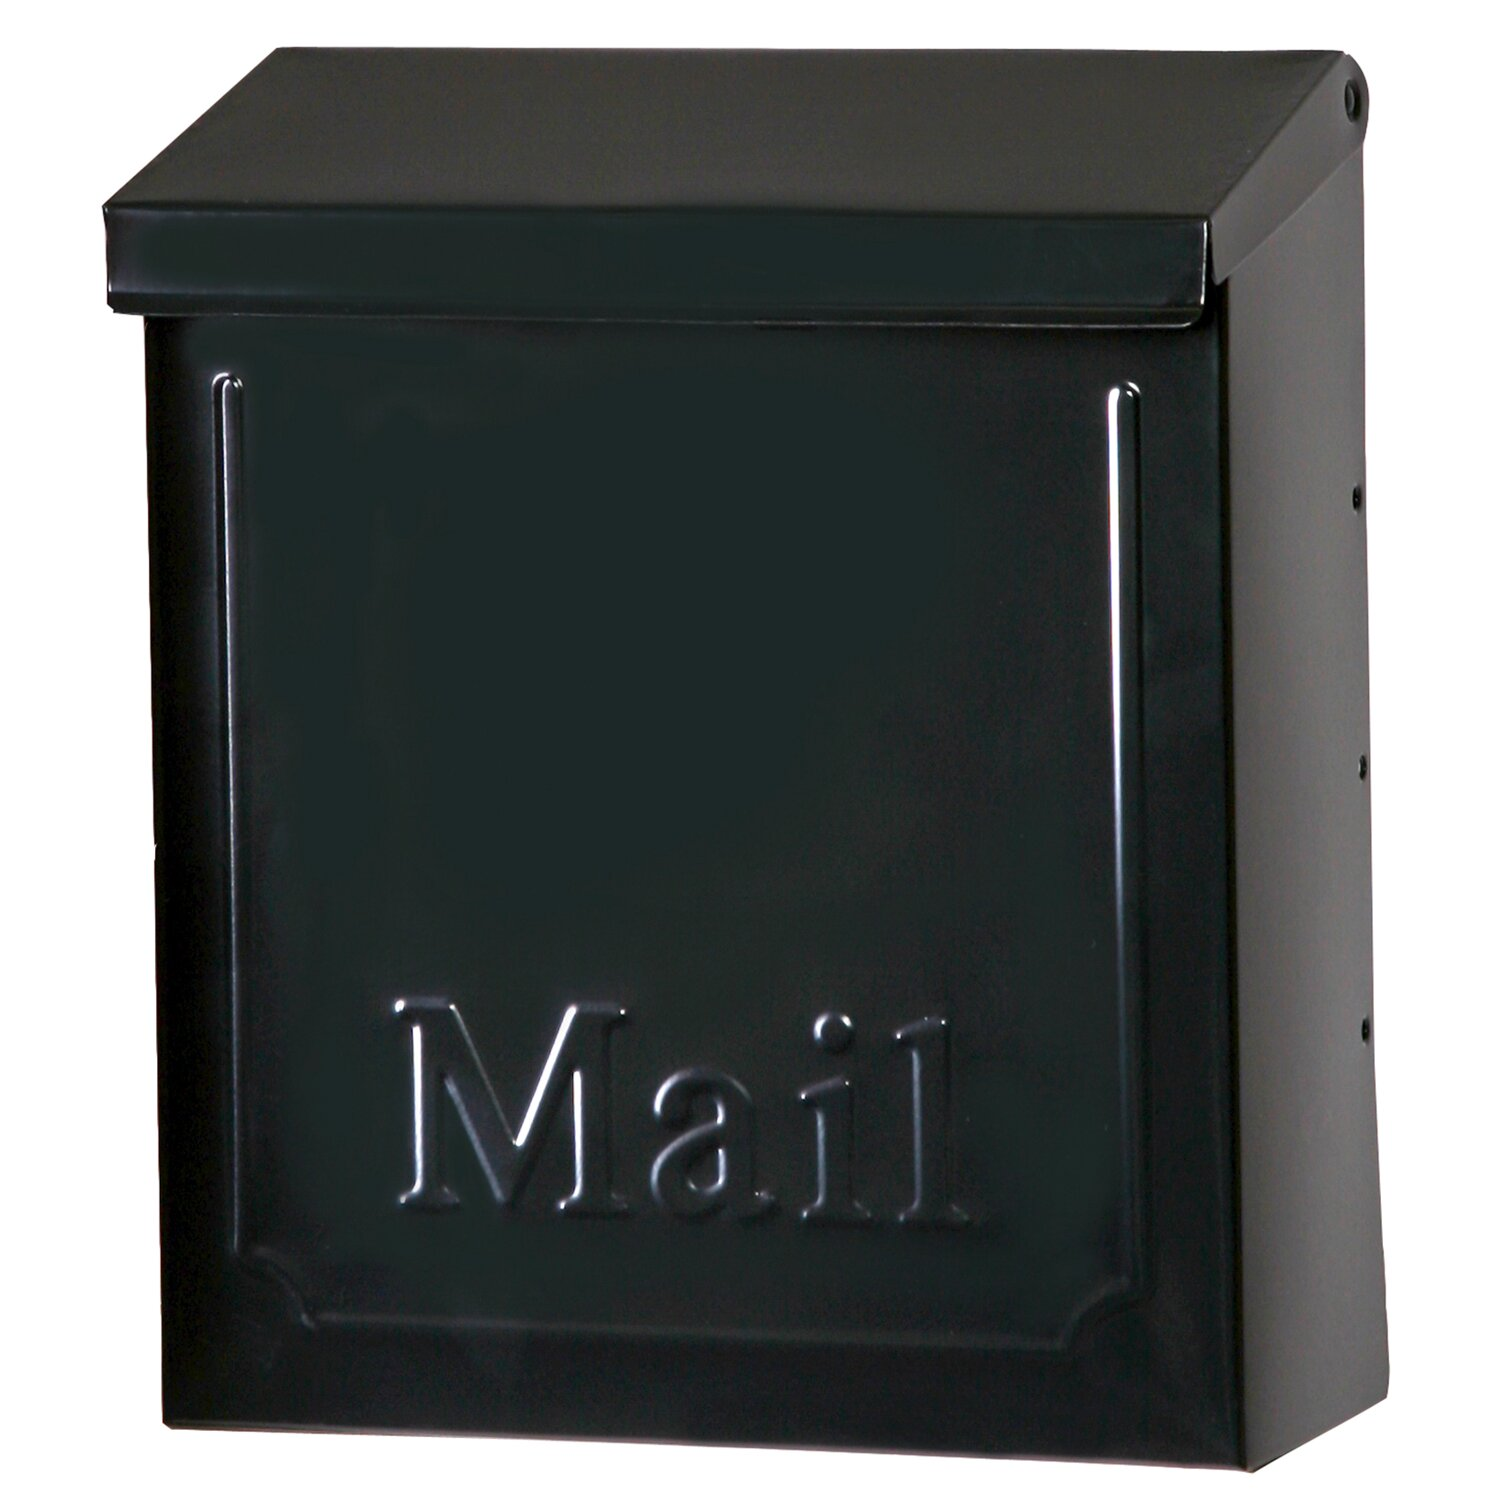 Symple Stuff Wall Mounted Mailbox With Lock Amp Reviews